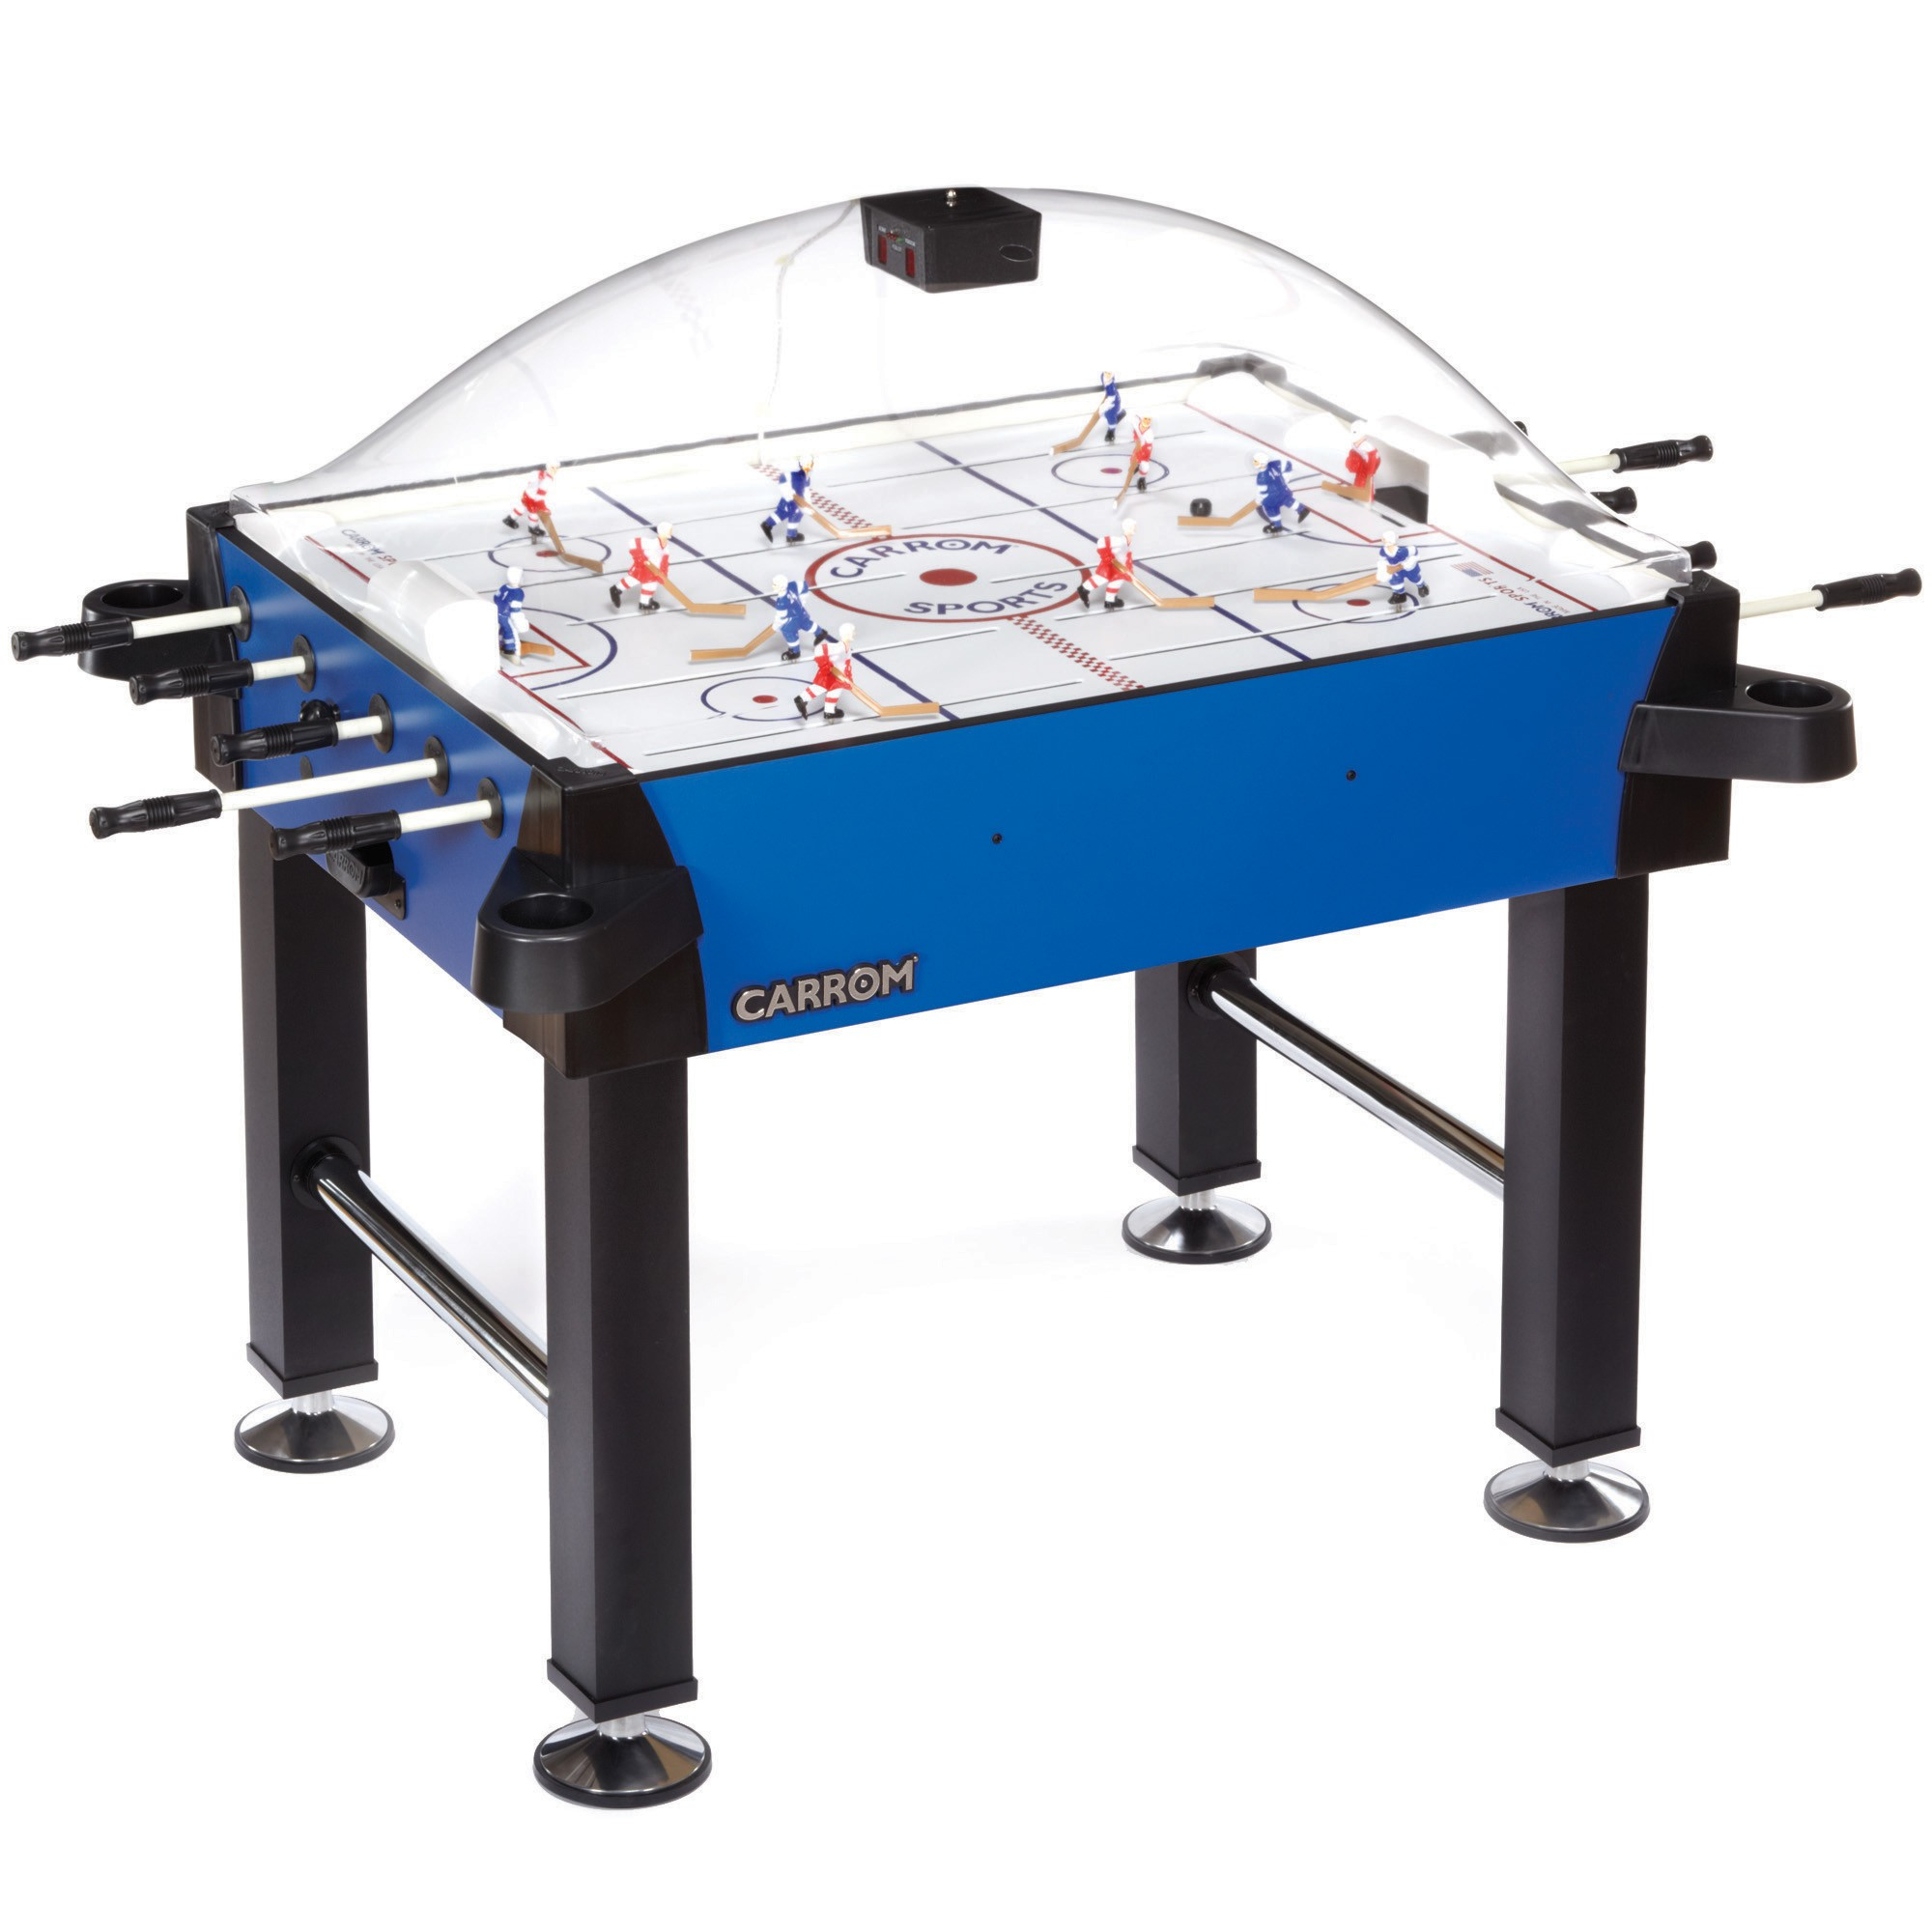 Table Dome Super Hockey 435.00